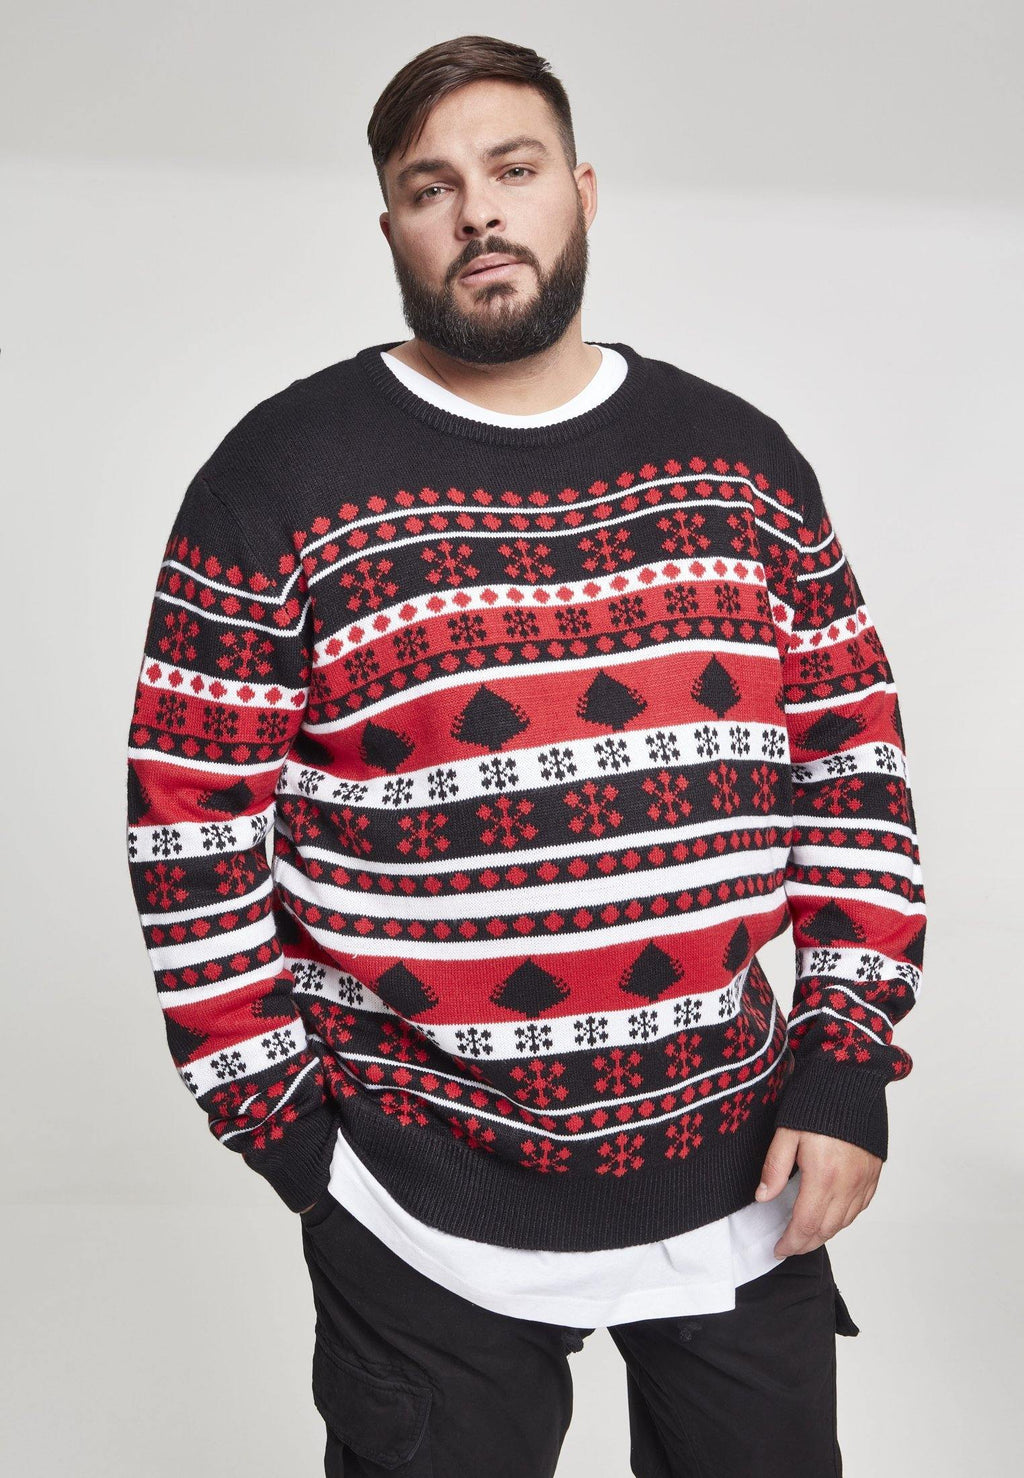 Snowflake Christmas Tree Sweater - Black Red White - DadiTude